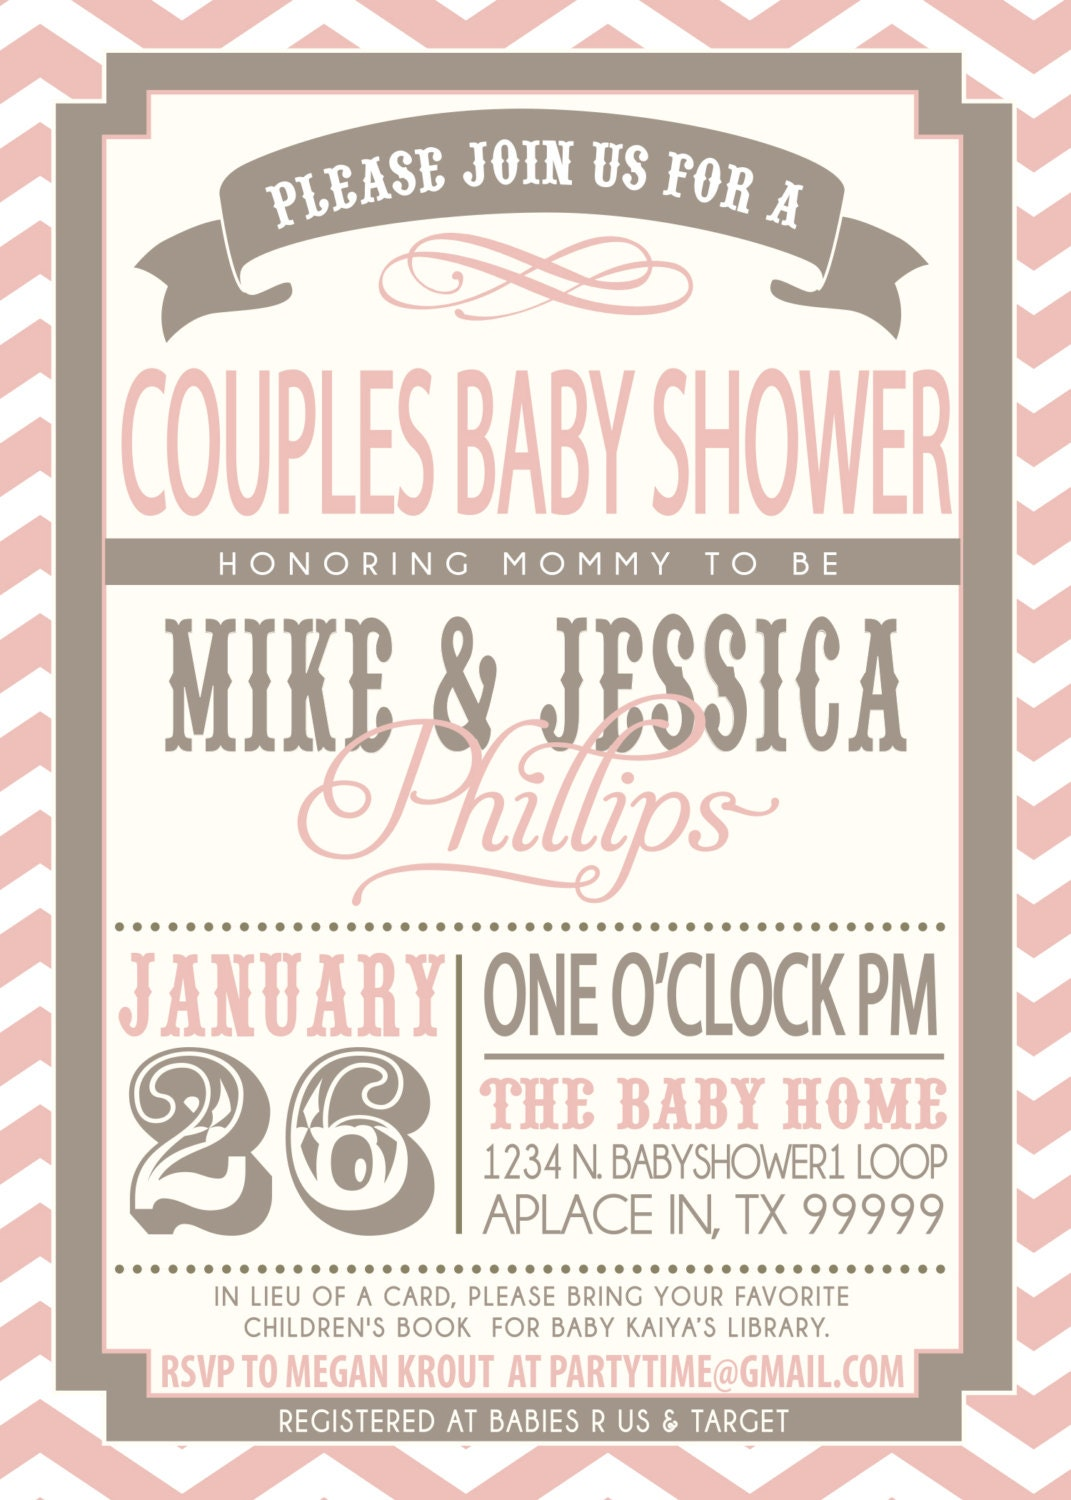 on sale couples baby shower invitation pink and grey